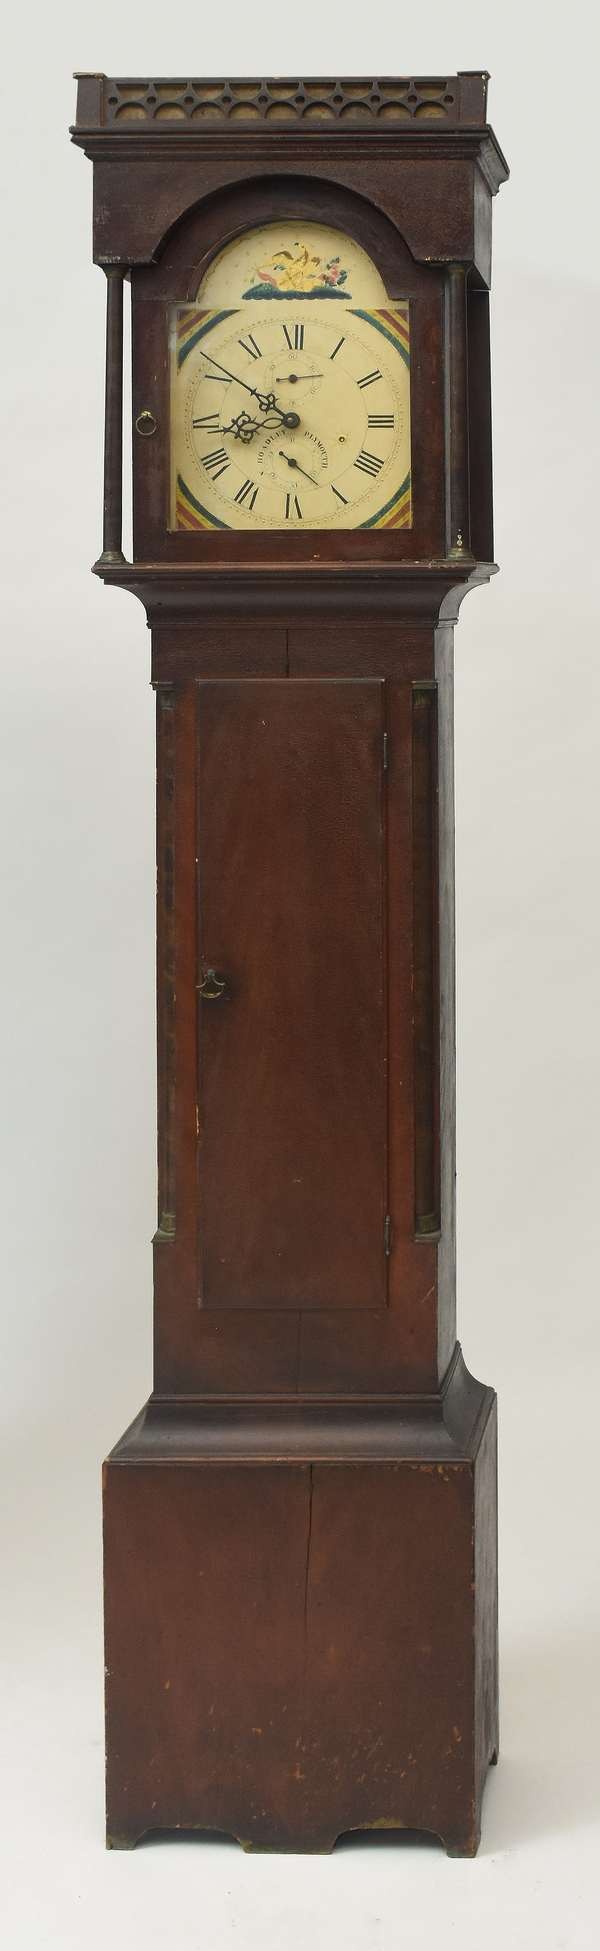 Early 19th C. Silas Hoadley Plymouth Grandfather clock with painted case, 86